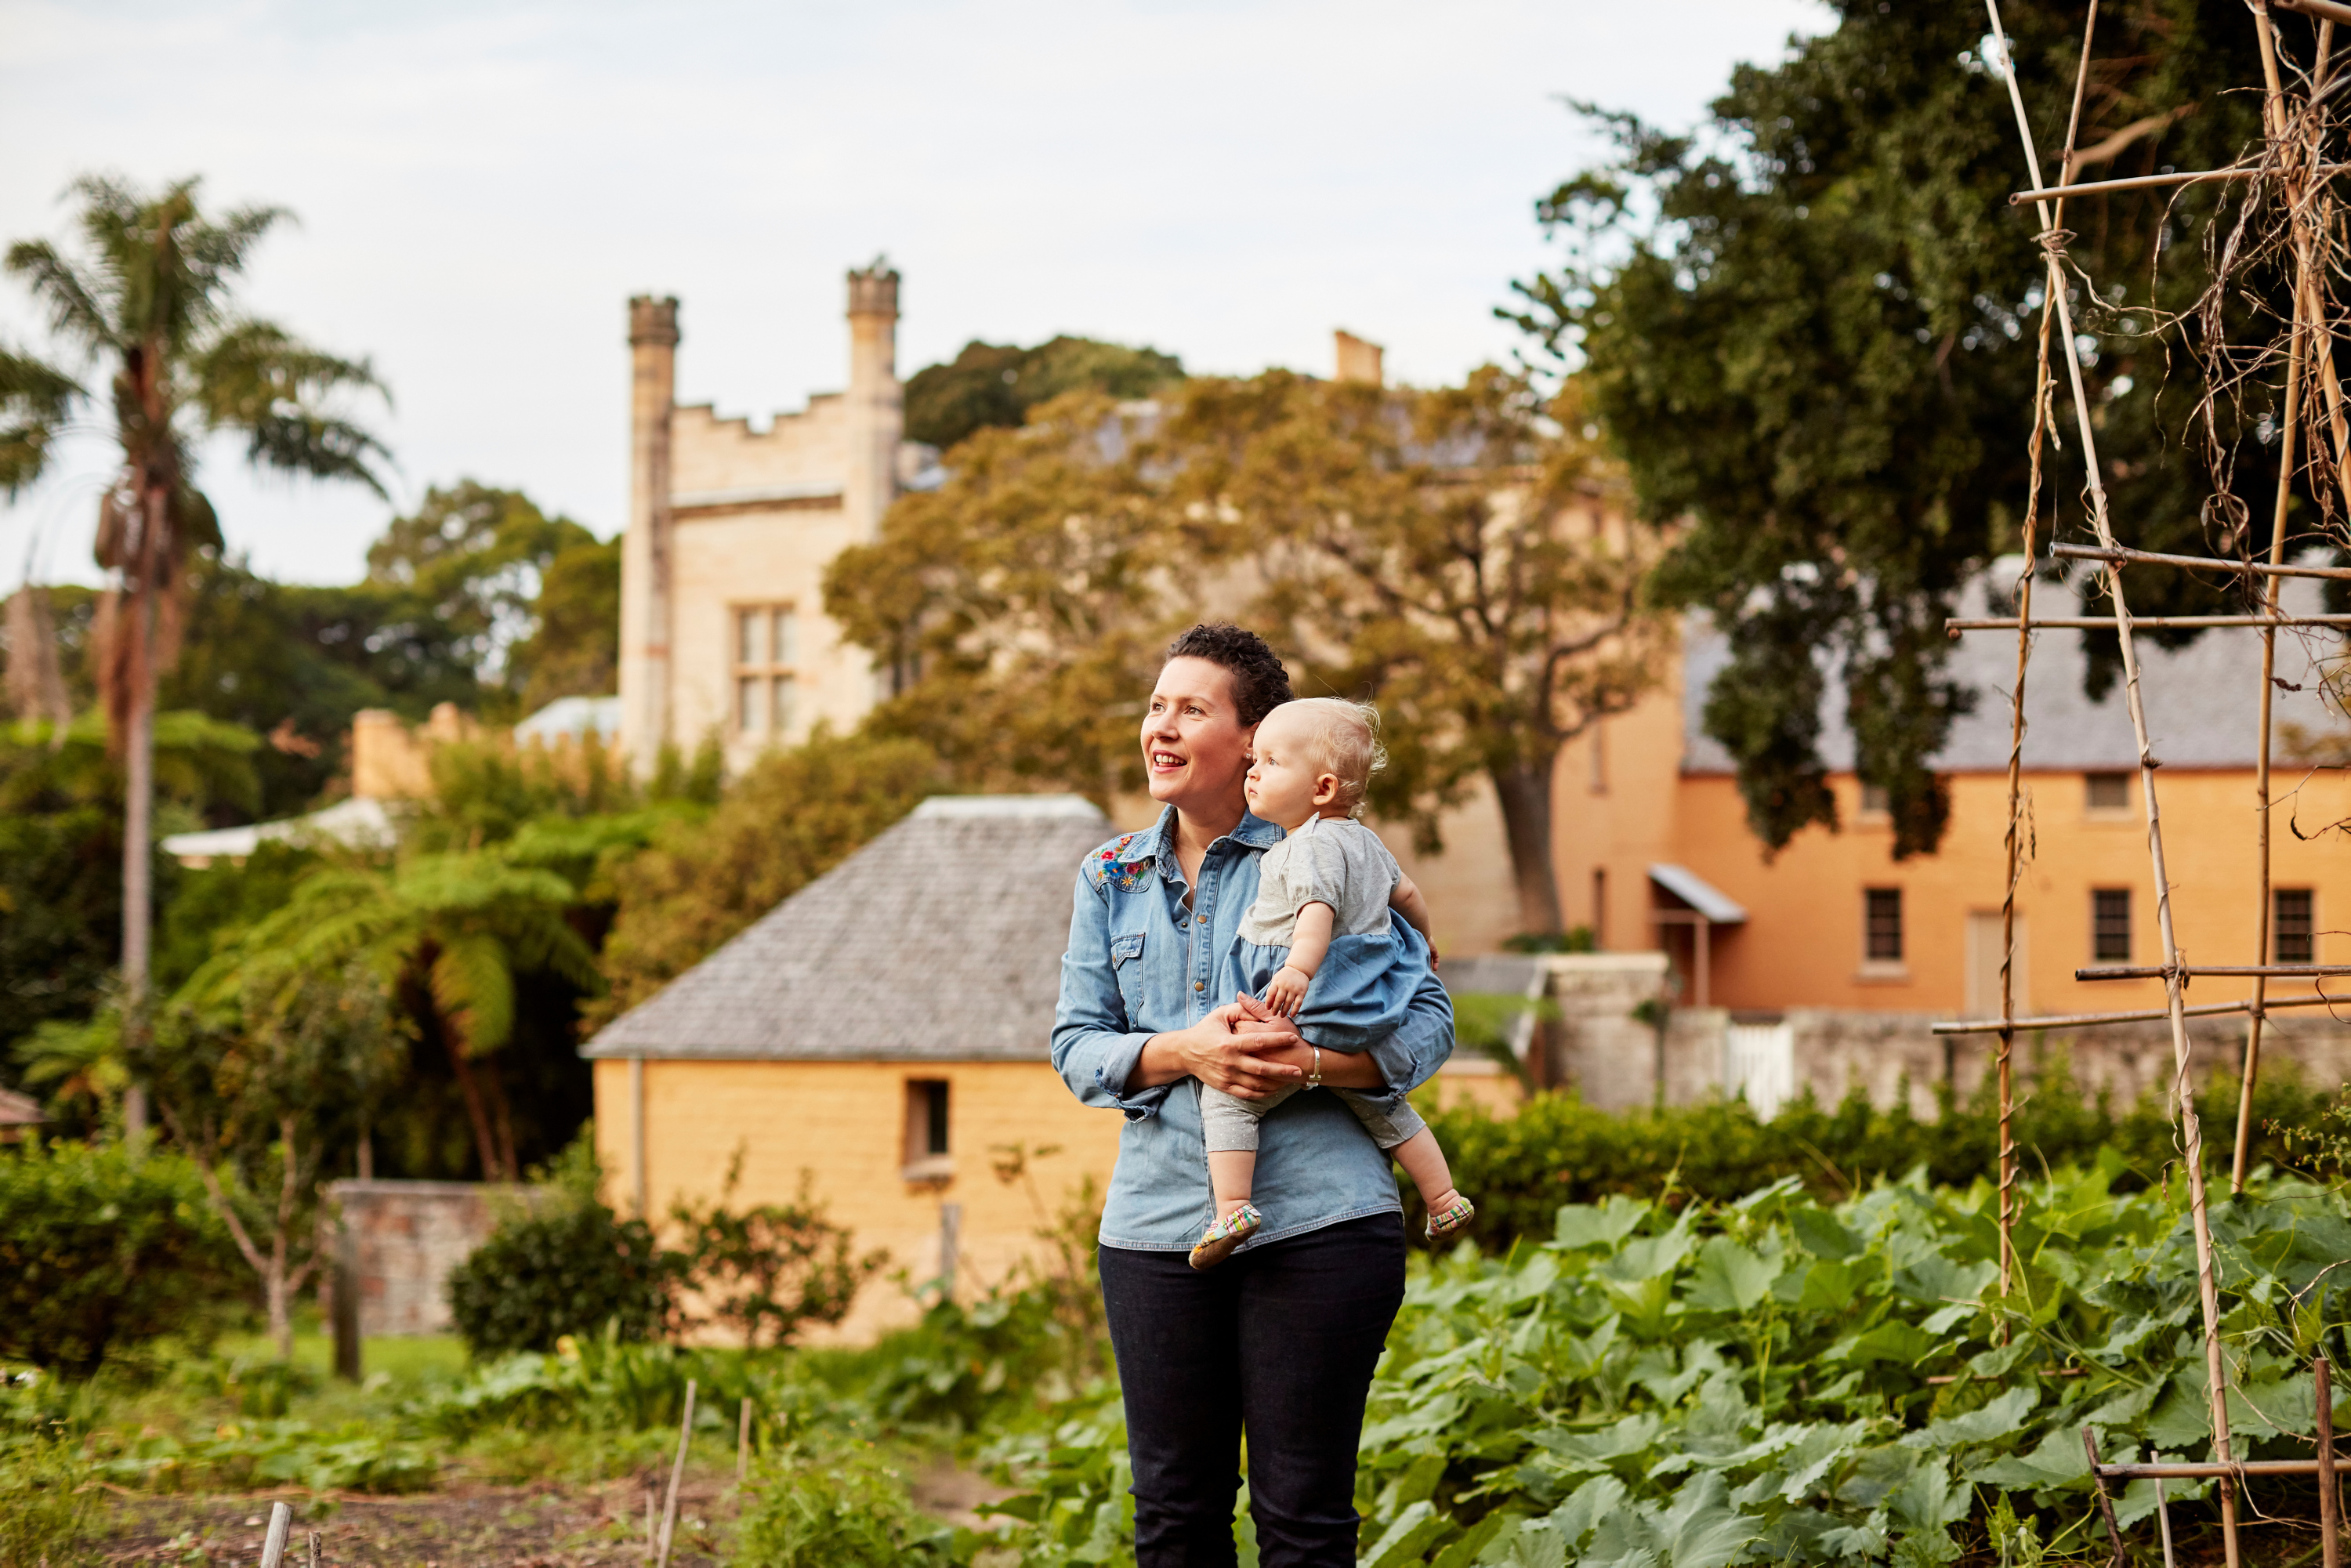 Household membership to enjoy our 12 historic houses and museums